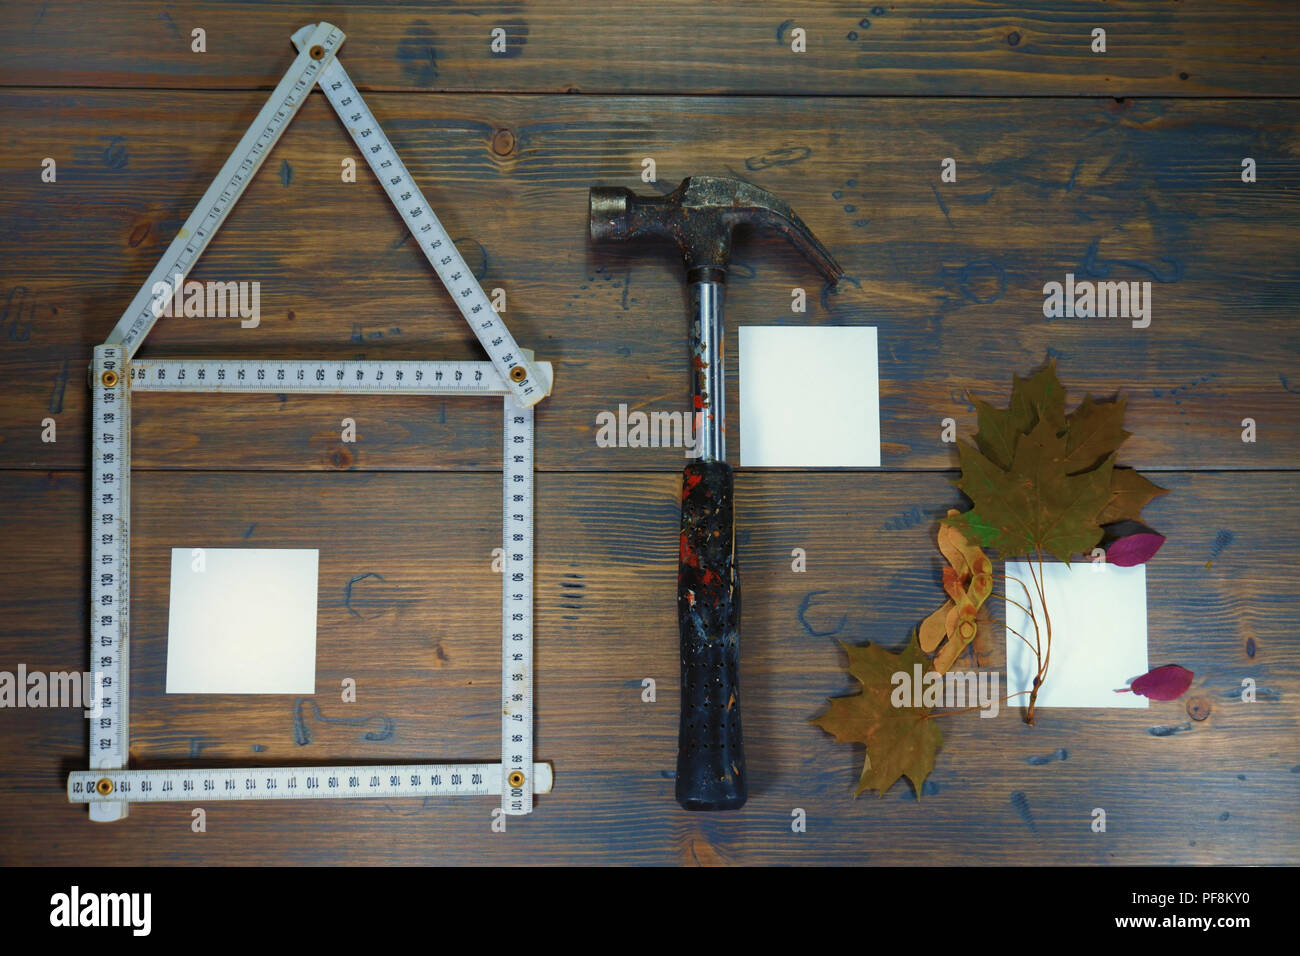 Conceptual construction and renovation still life with a flat lay design of a house formed by a ruler, hammer and autumn leaves with blank sticky note Stock Photo